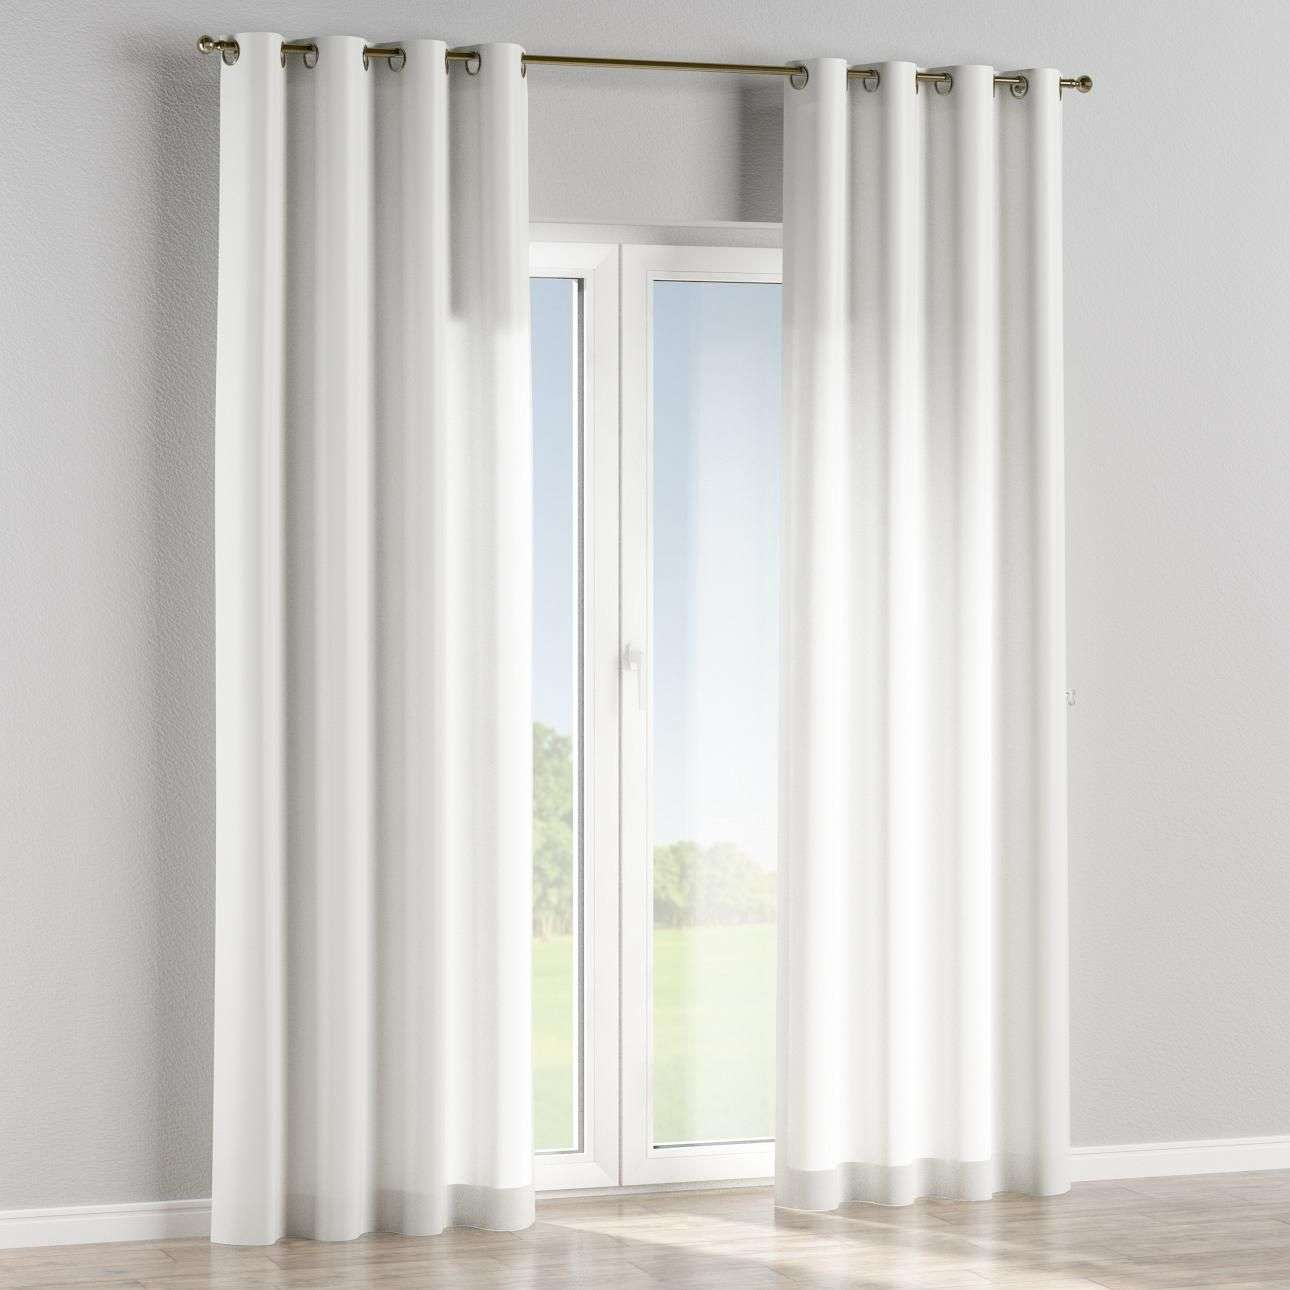 Eyelet curtains in collection Marina, fabric: 140-15